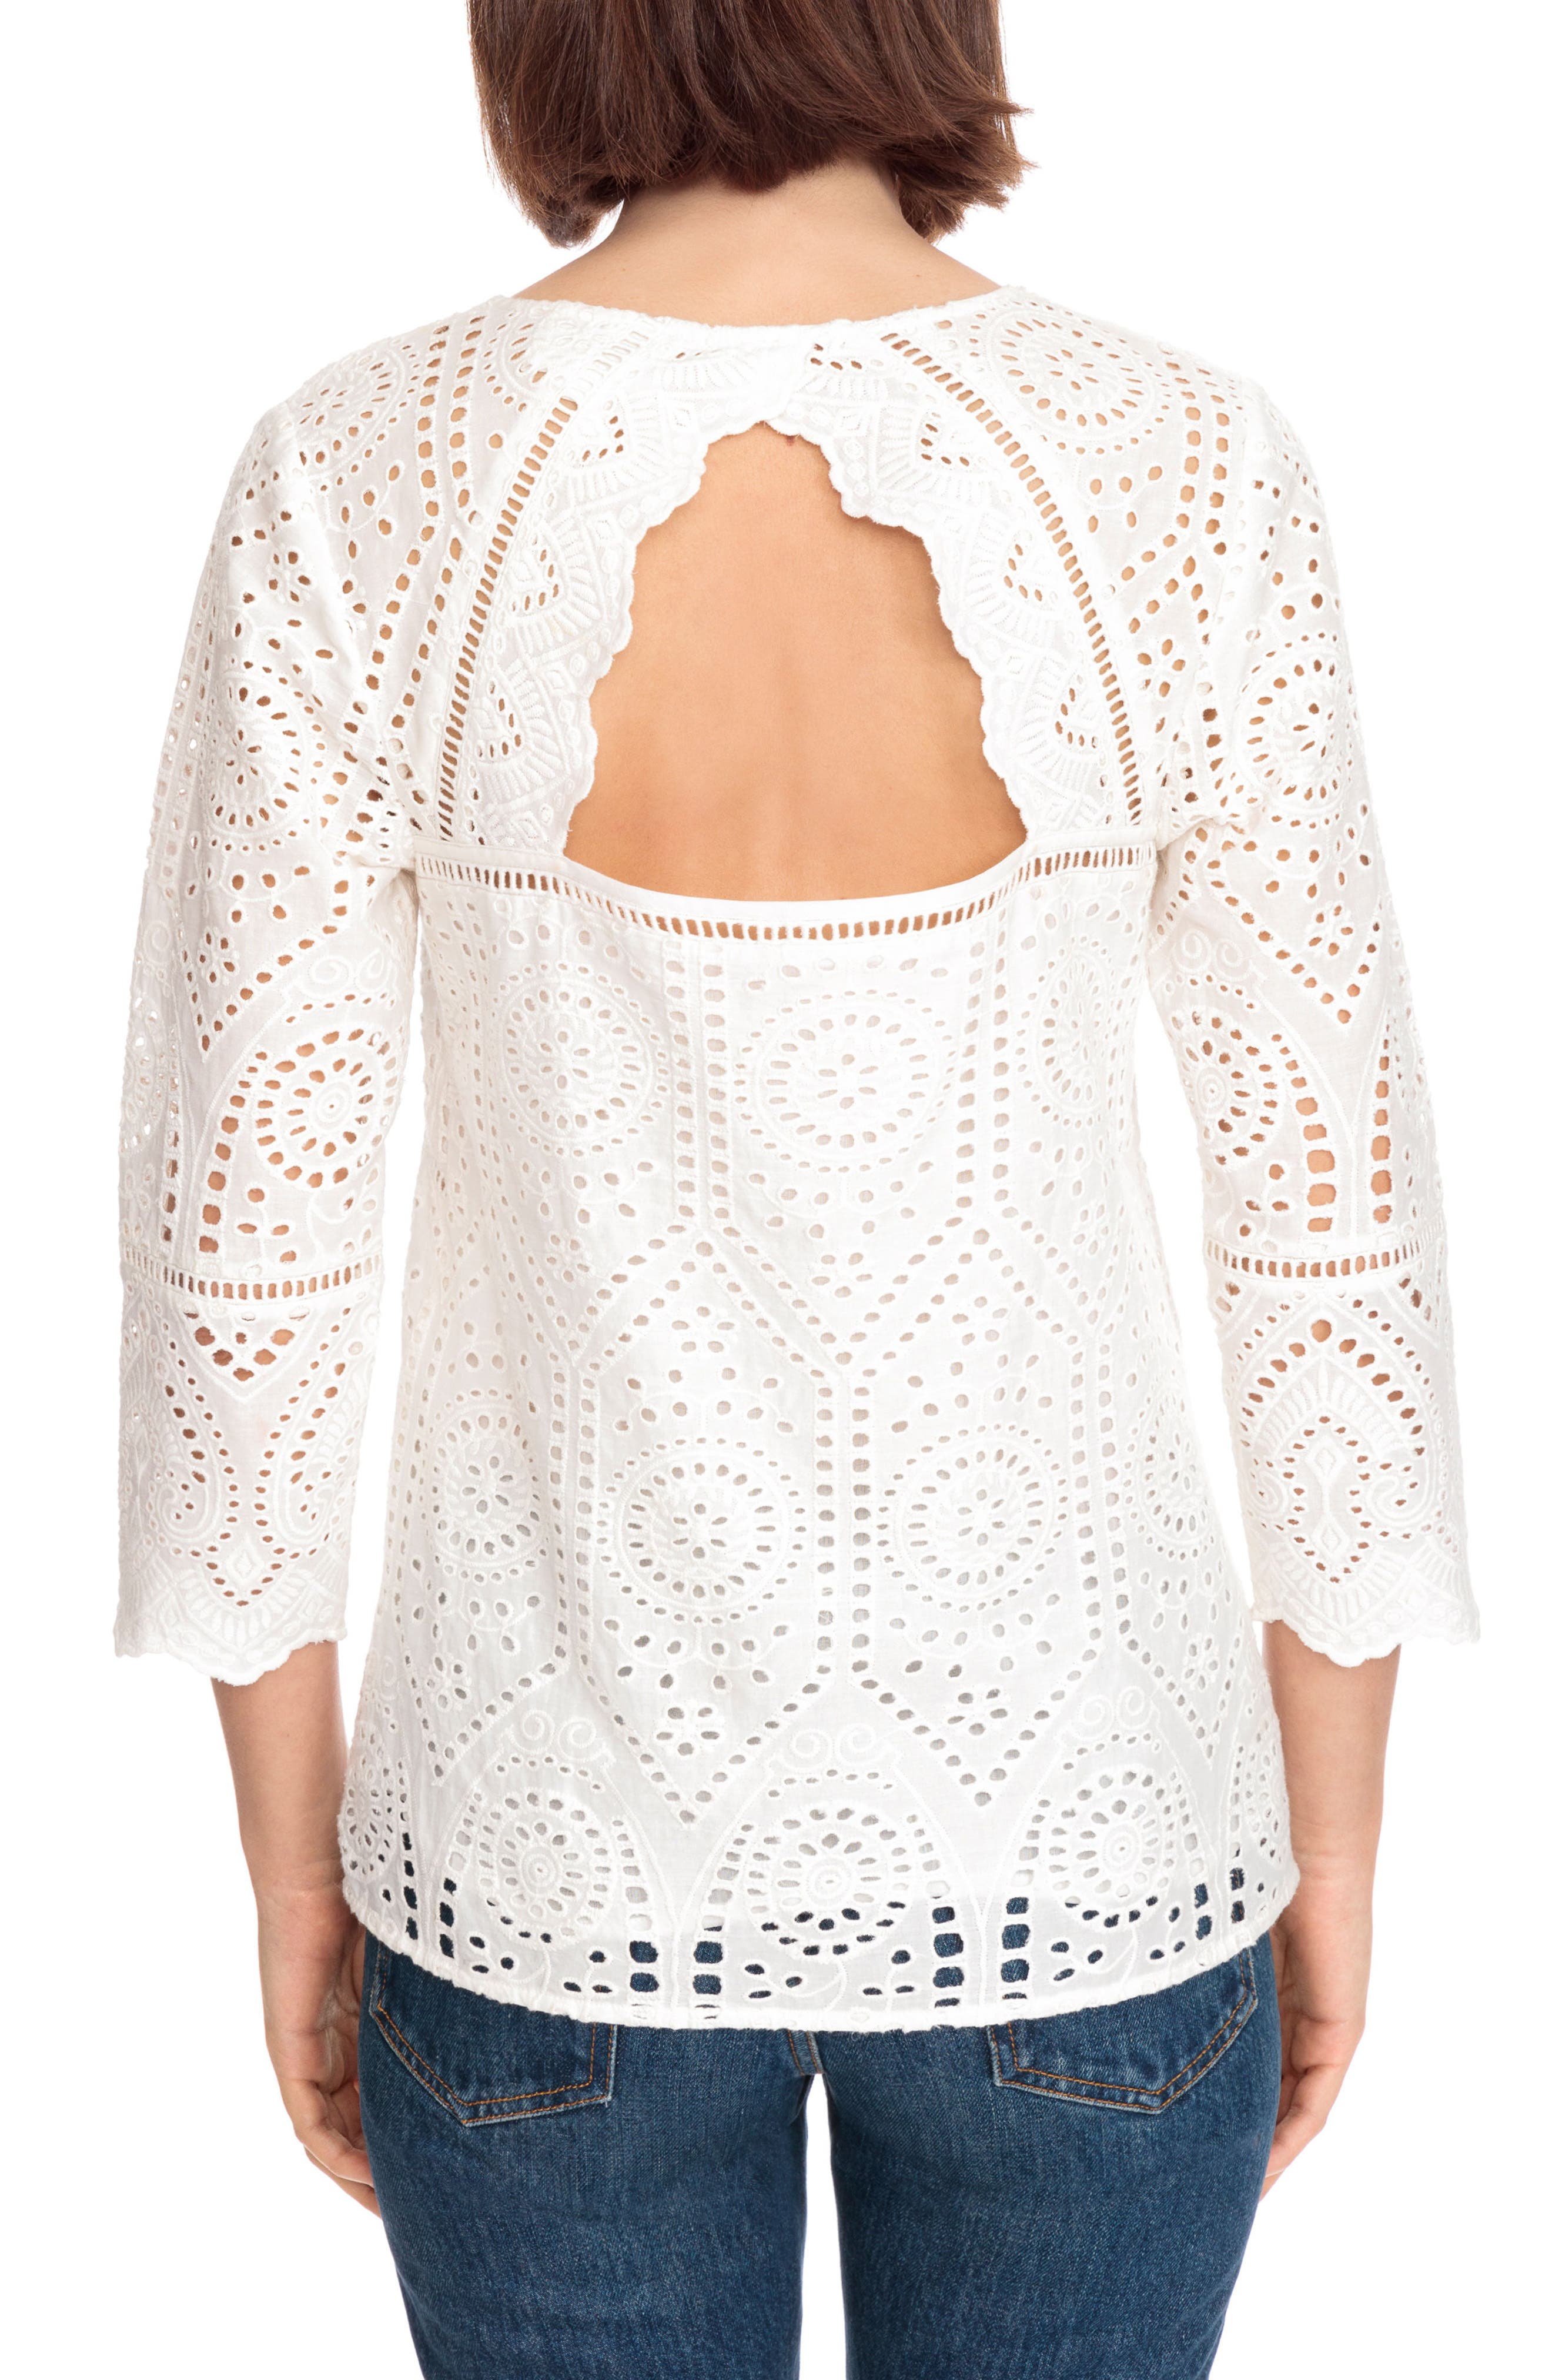 Andrea Cutwork Blouse,                             Alternate thumbnail 2, color,                             100